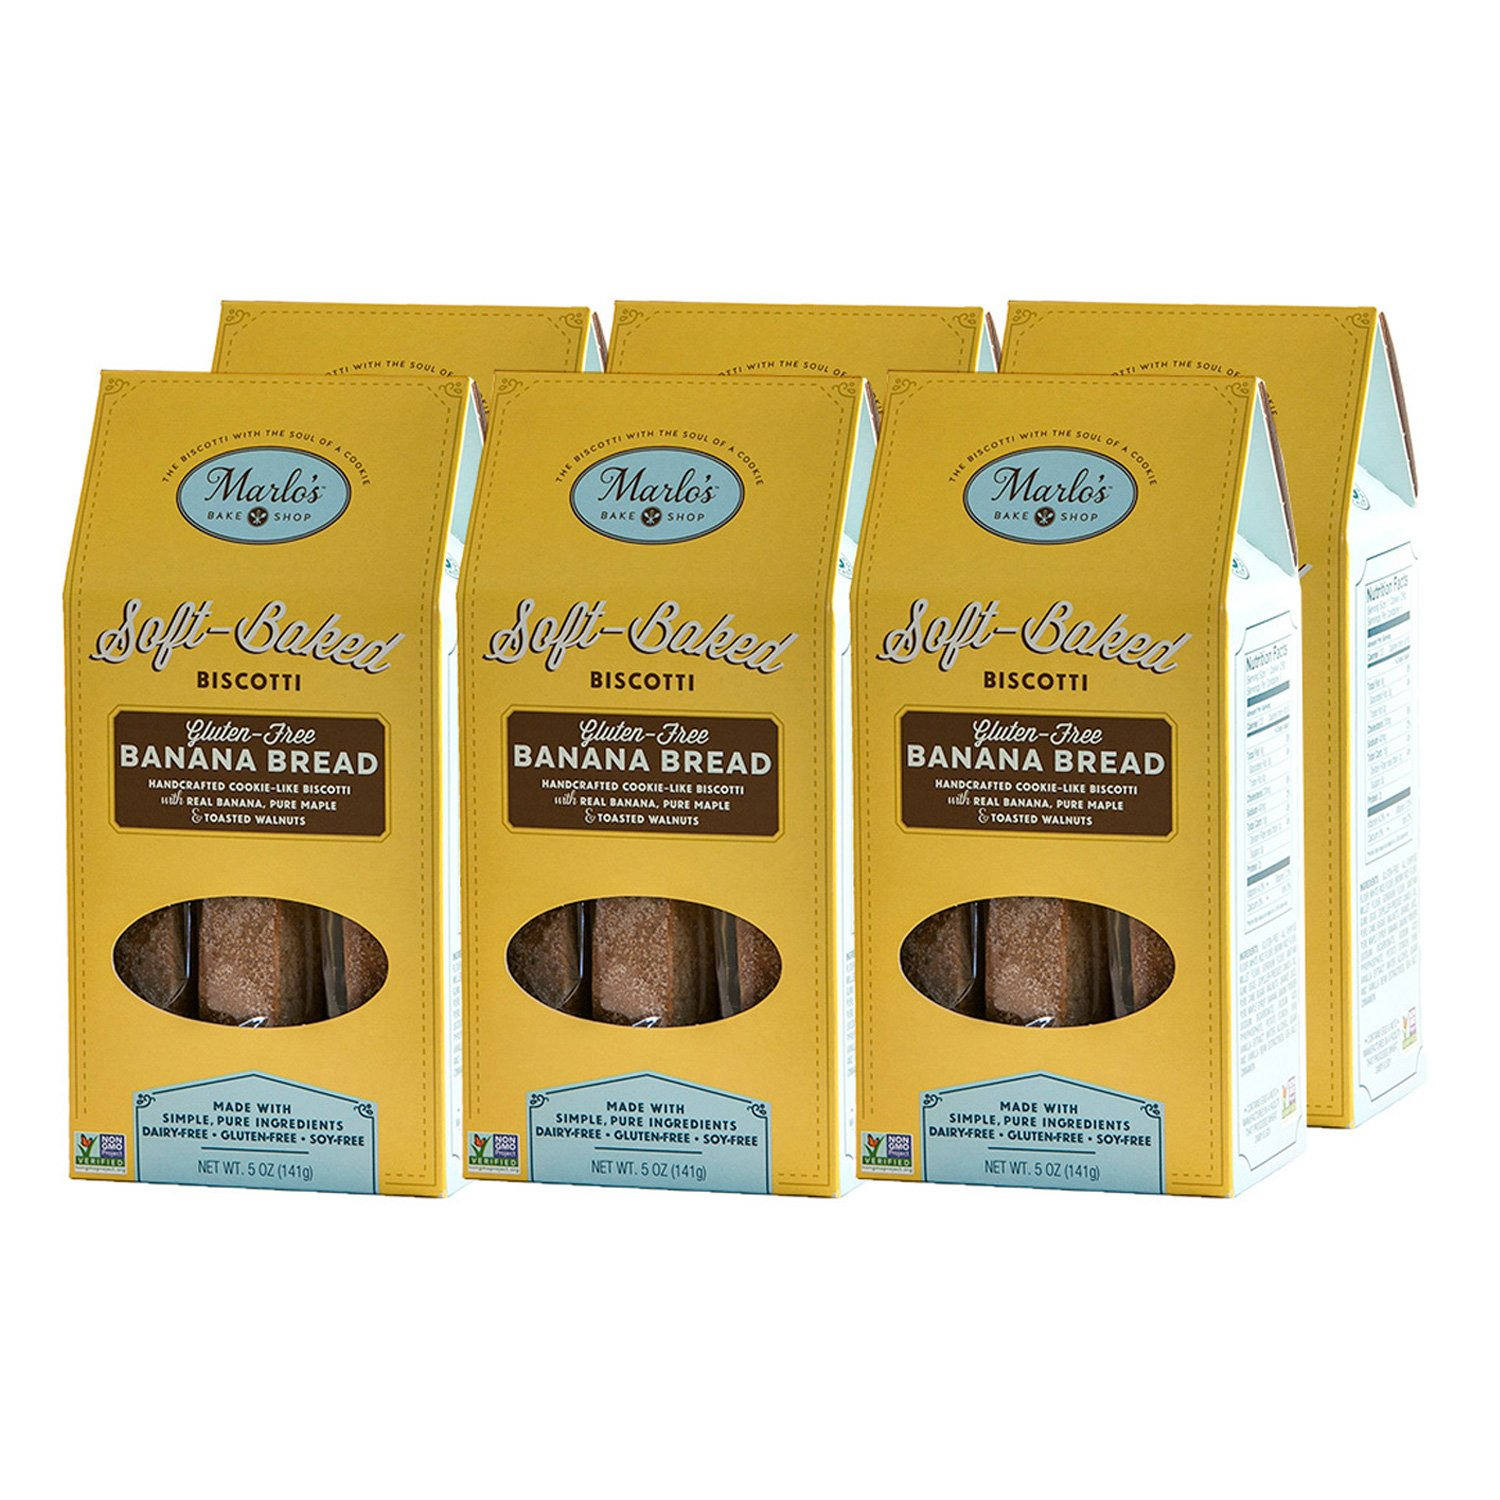 Marlo's Bakeshop | Individually Wrapped Biscotti, Gluten-Free, Keto Snack Friendly, Banana Bread Gourmet Biscotti Cookies, Dairy-Free, Soy-Free, Non-GMO, Wheat-Free, (30 Servings) by Marlo's Bakeshop